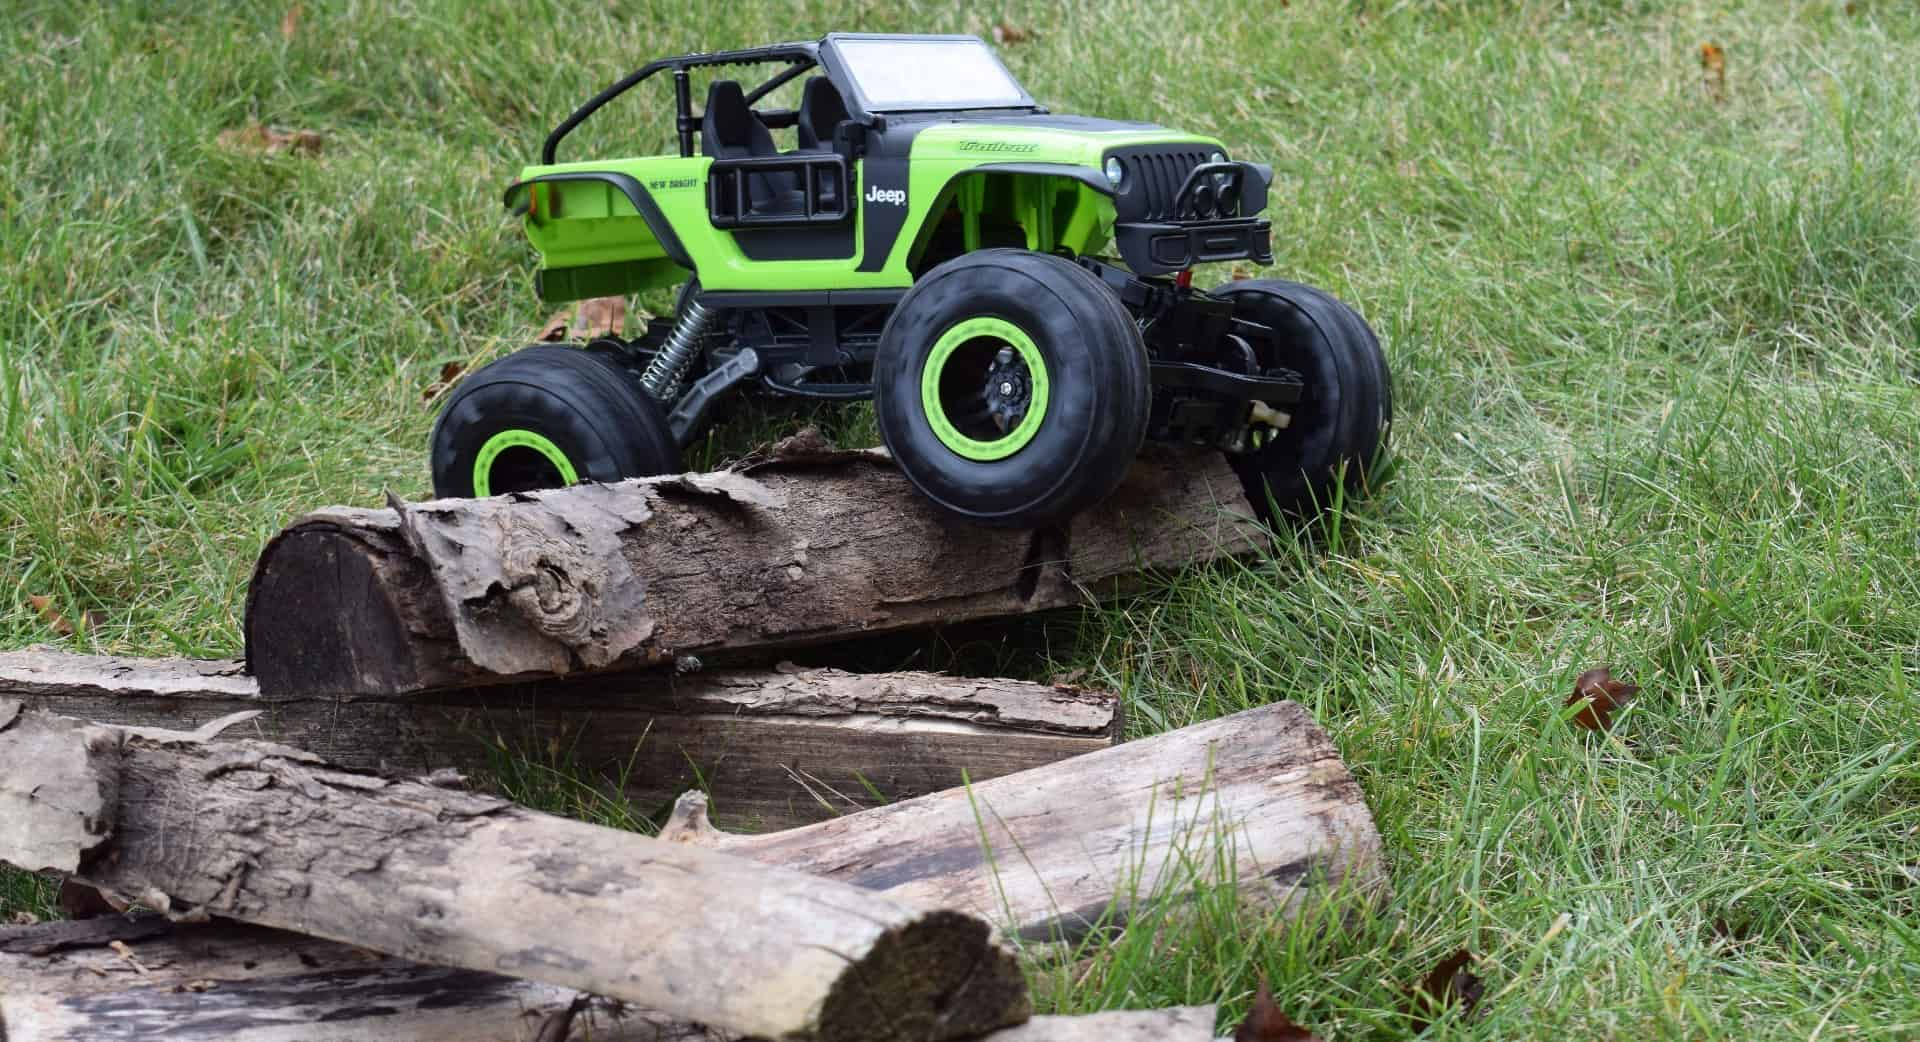 New Bright RC DashCam Jeep Trailcat - Over the logs